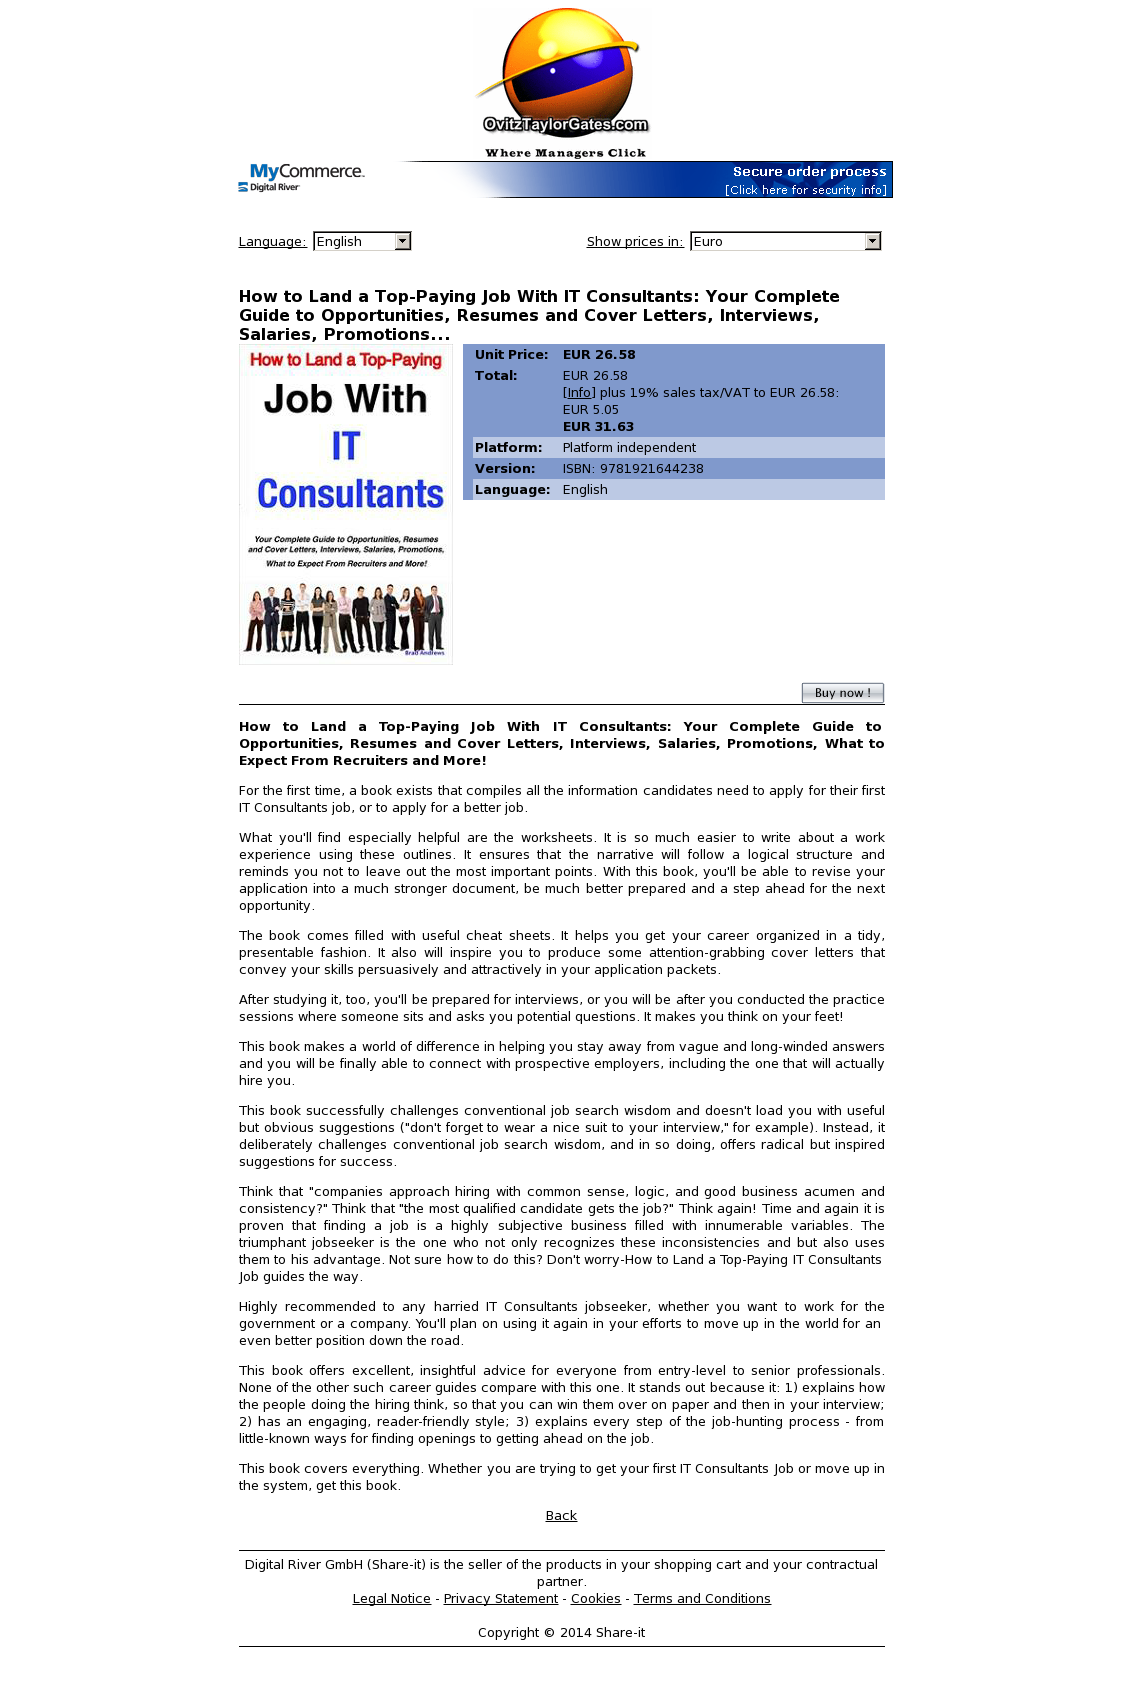 How to Land a Top-Paying Job With IT Consultants: Your Complete Guide to Opportunities, Resumes and Cover Letters, Interviews, Salaries, Promotions...